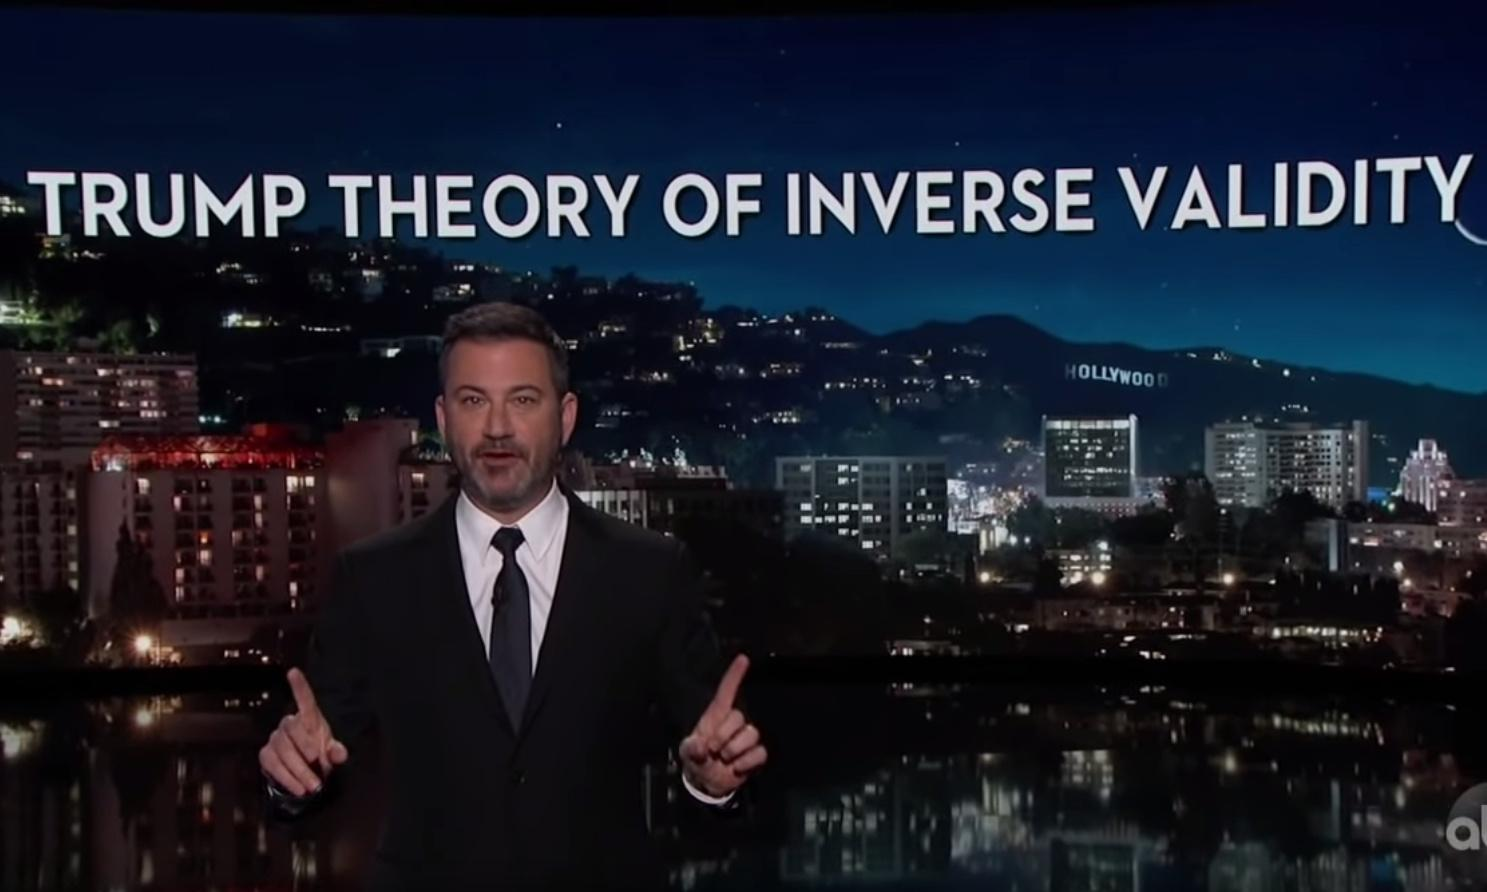 Jimmy Kimmel: for Trump, 'things that are true are false'